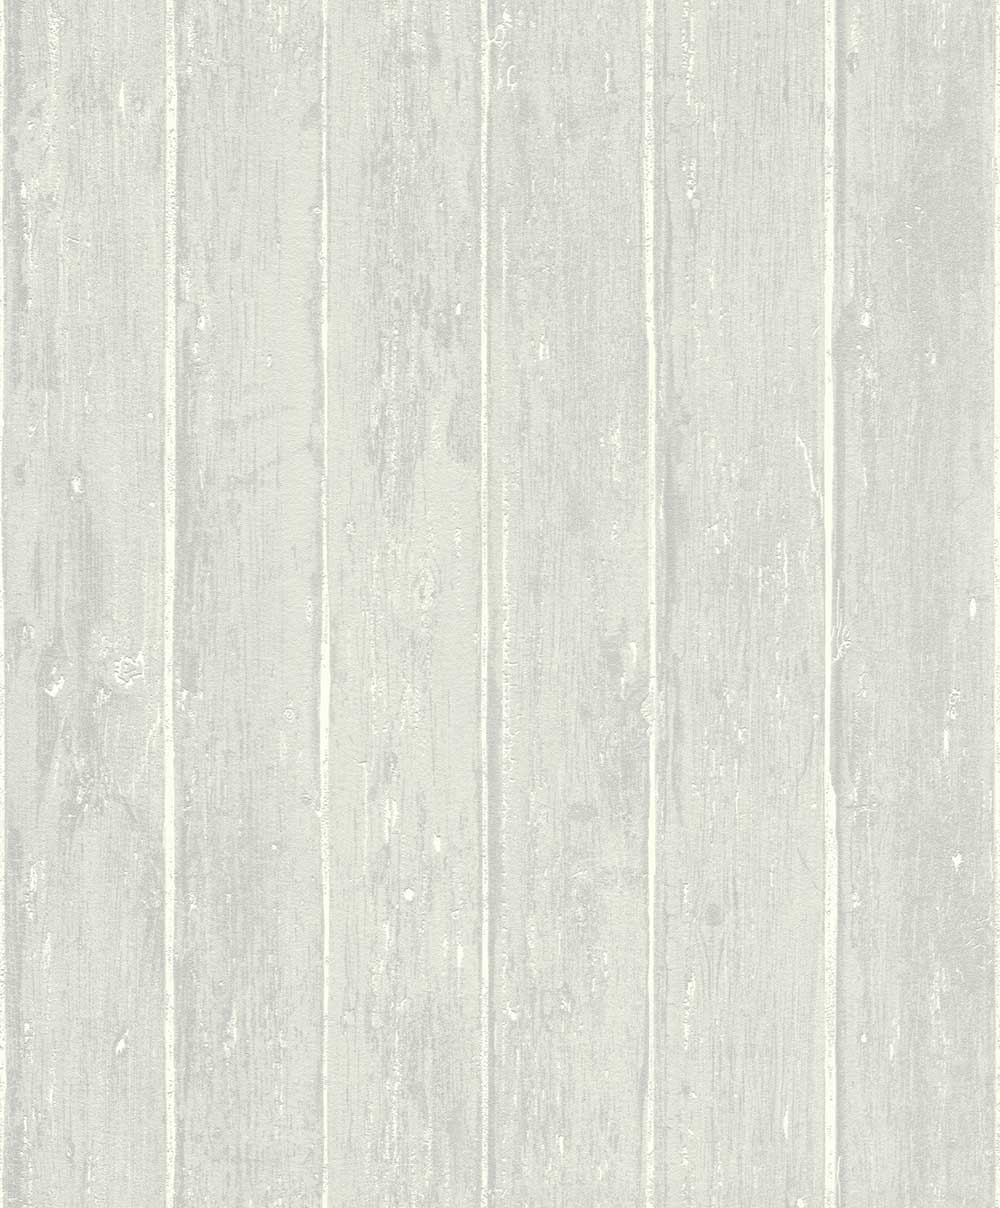 Albany Distressed Decking Silver Grey Wallpaper - Product code: 809237